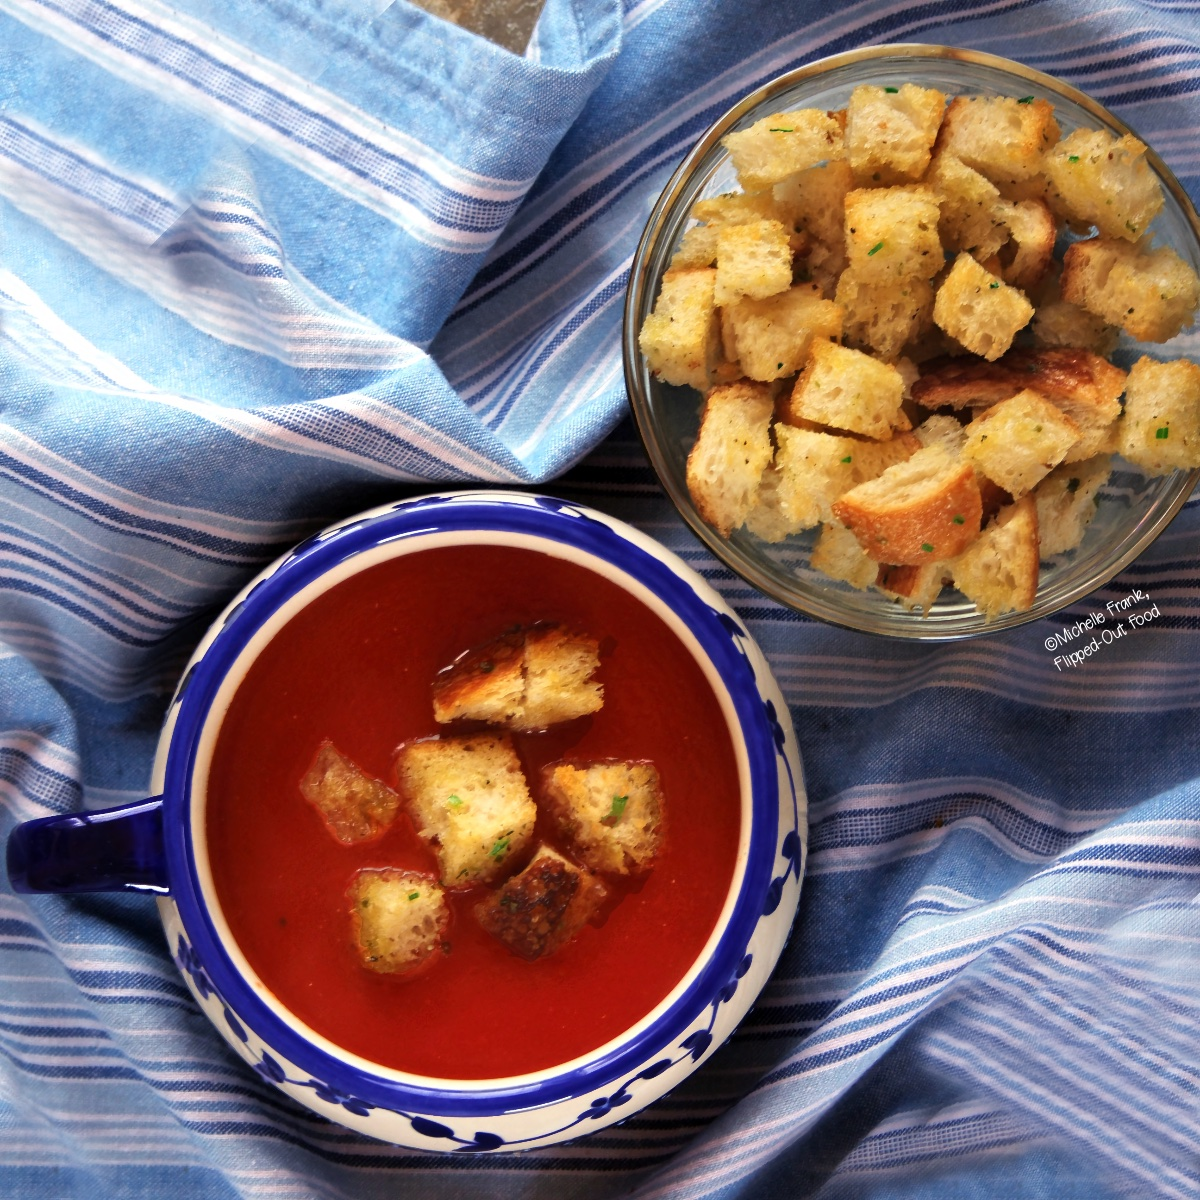 Easy Soups for Fall: A blue and white ceramic bowl of soup garnished with croutons, sitting on top of a blue and white striped cloth, next to a bowl of freshly toasted homemade croutons.